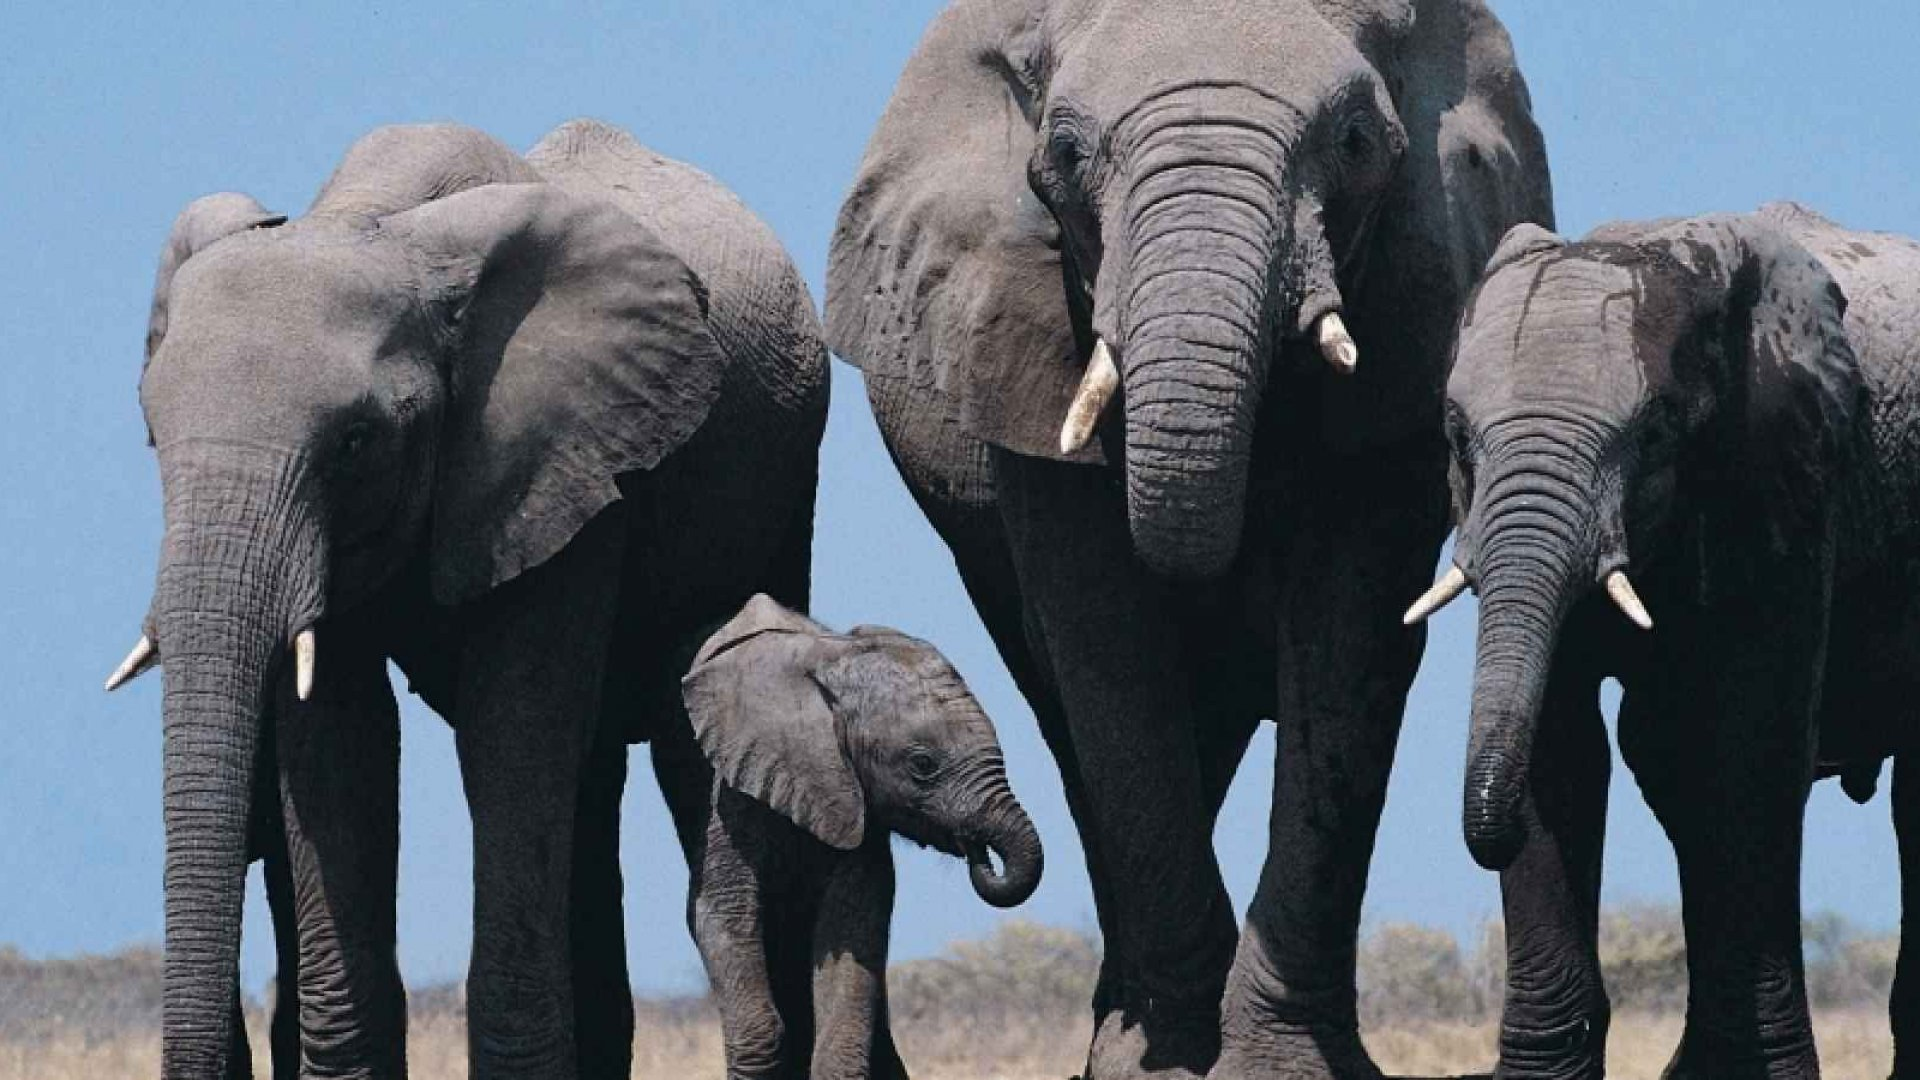 From Idea to Market Reality: Making an Elephant Surf